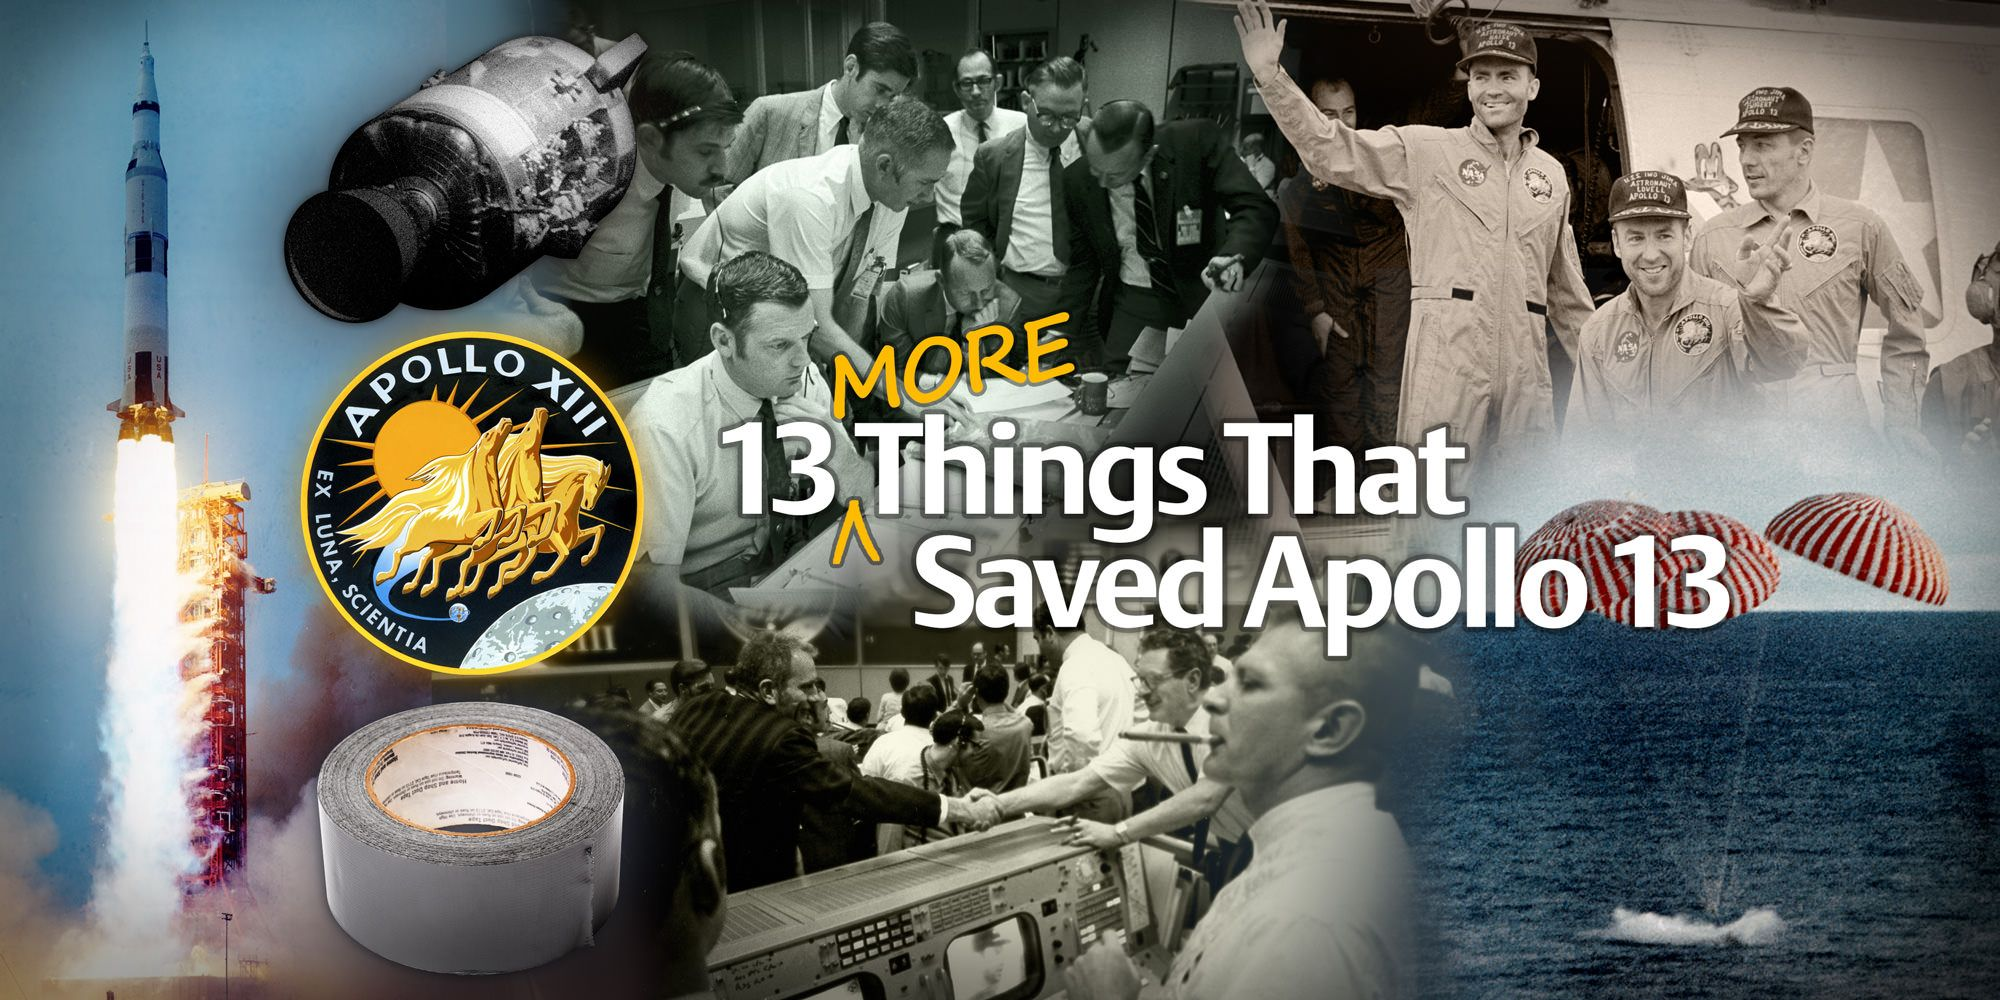 On The Night Of April 13th 1970 When The Oxygen Tank In Apollo 13 S Command Module Exploded A 27 Year Old Engineer Named Jer Apollo 13 Universe Today Apollo